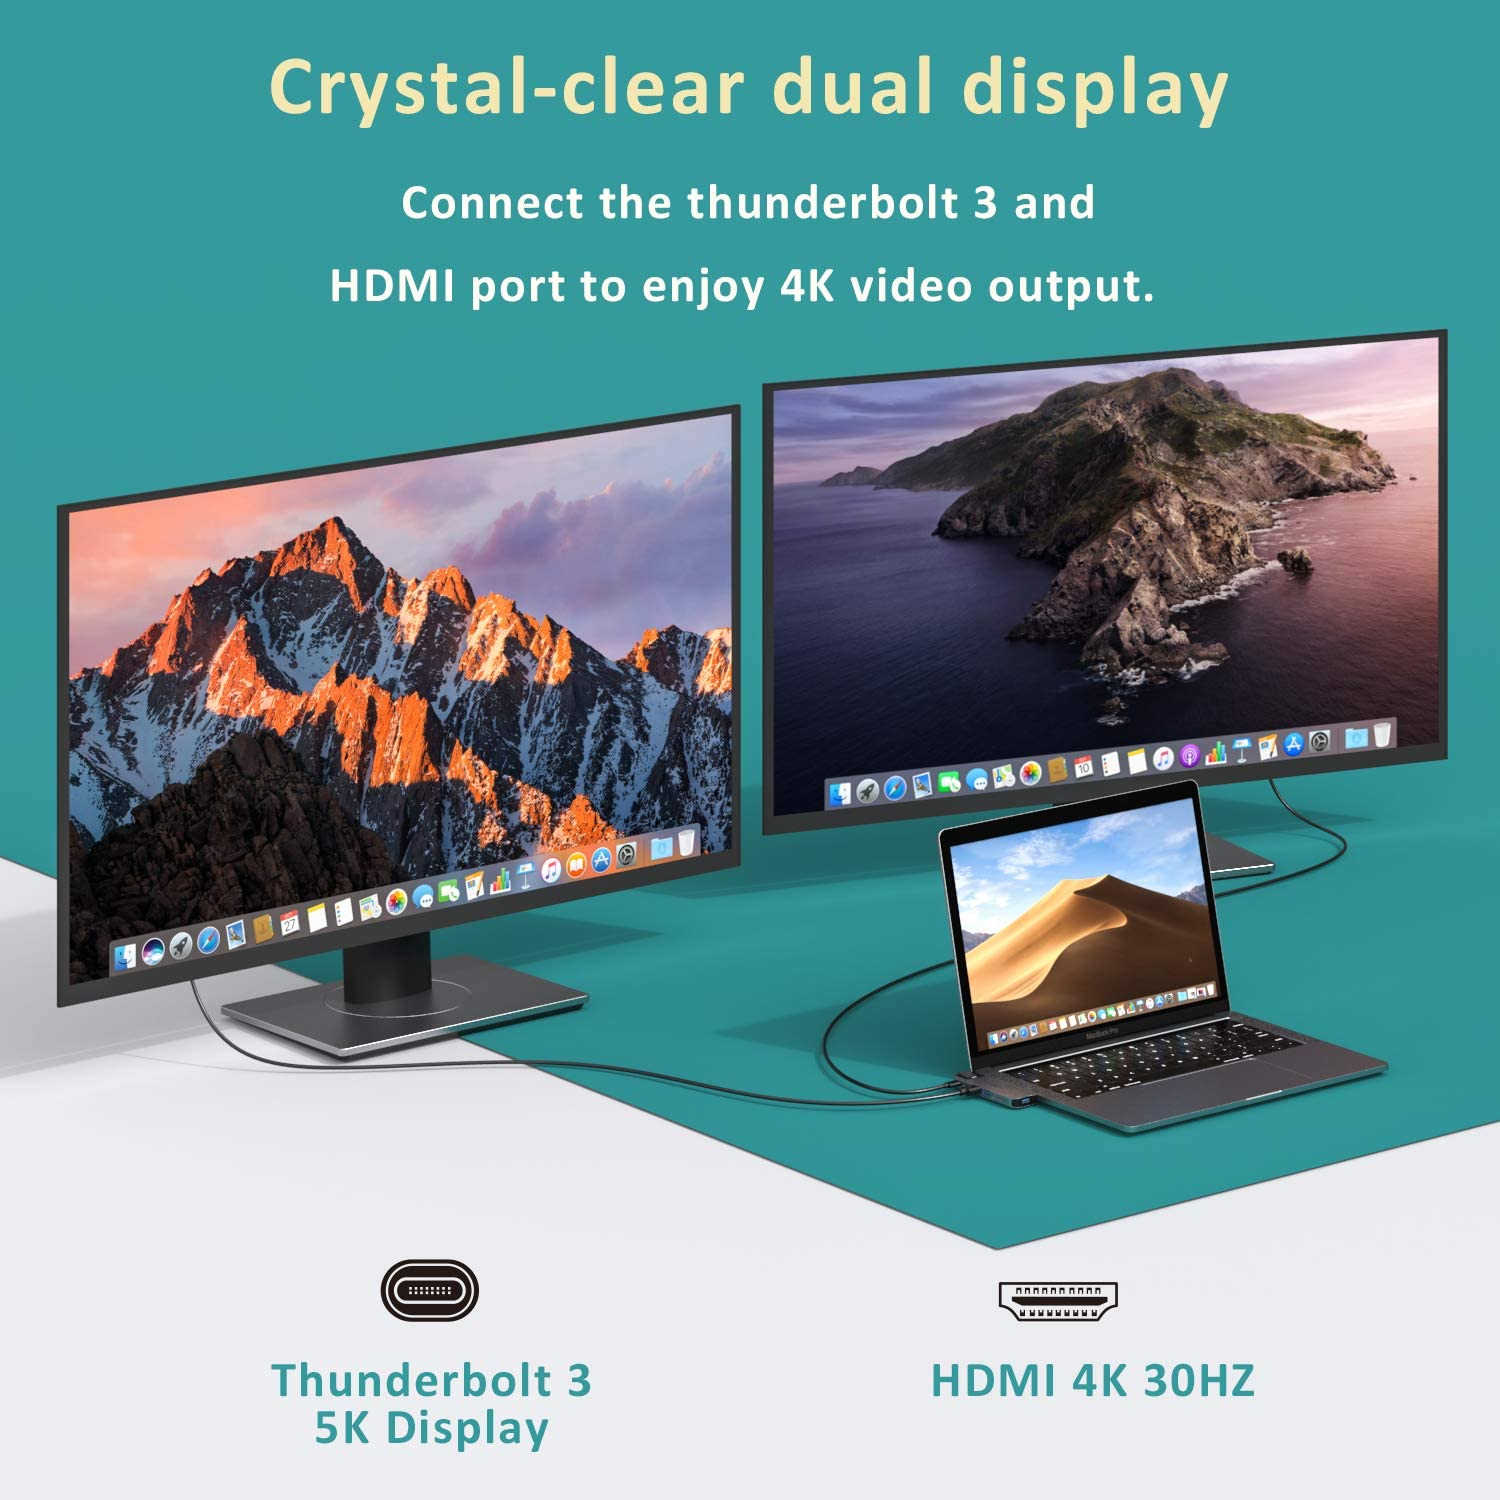 Gigabit ethernet USB C to HDMI Adapter for MacBook Pro//Air with 4K HDMI Port USB-C 100W PD and Thunderbolt 3 8-in-1 MacBook Docking Station TF//SD Card Reader MacBook Pro USB C Adapter 2 USB 3.0